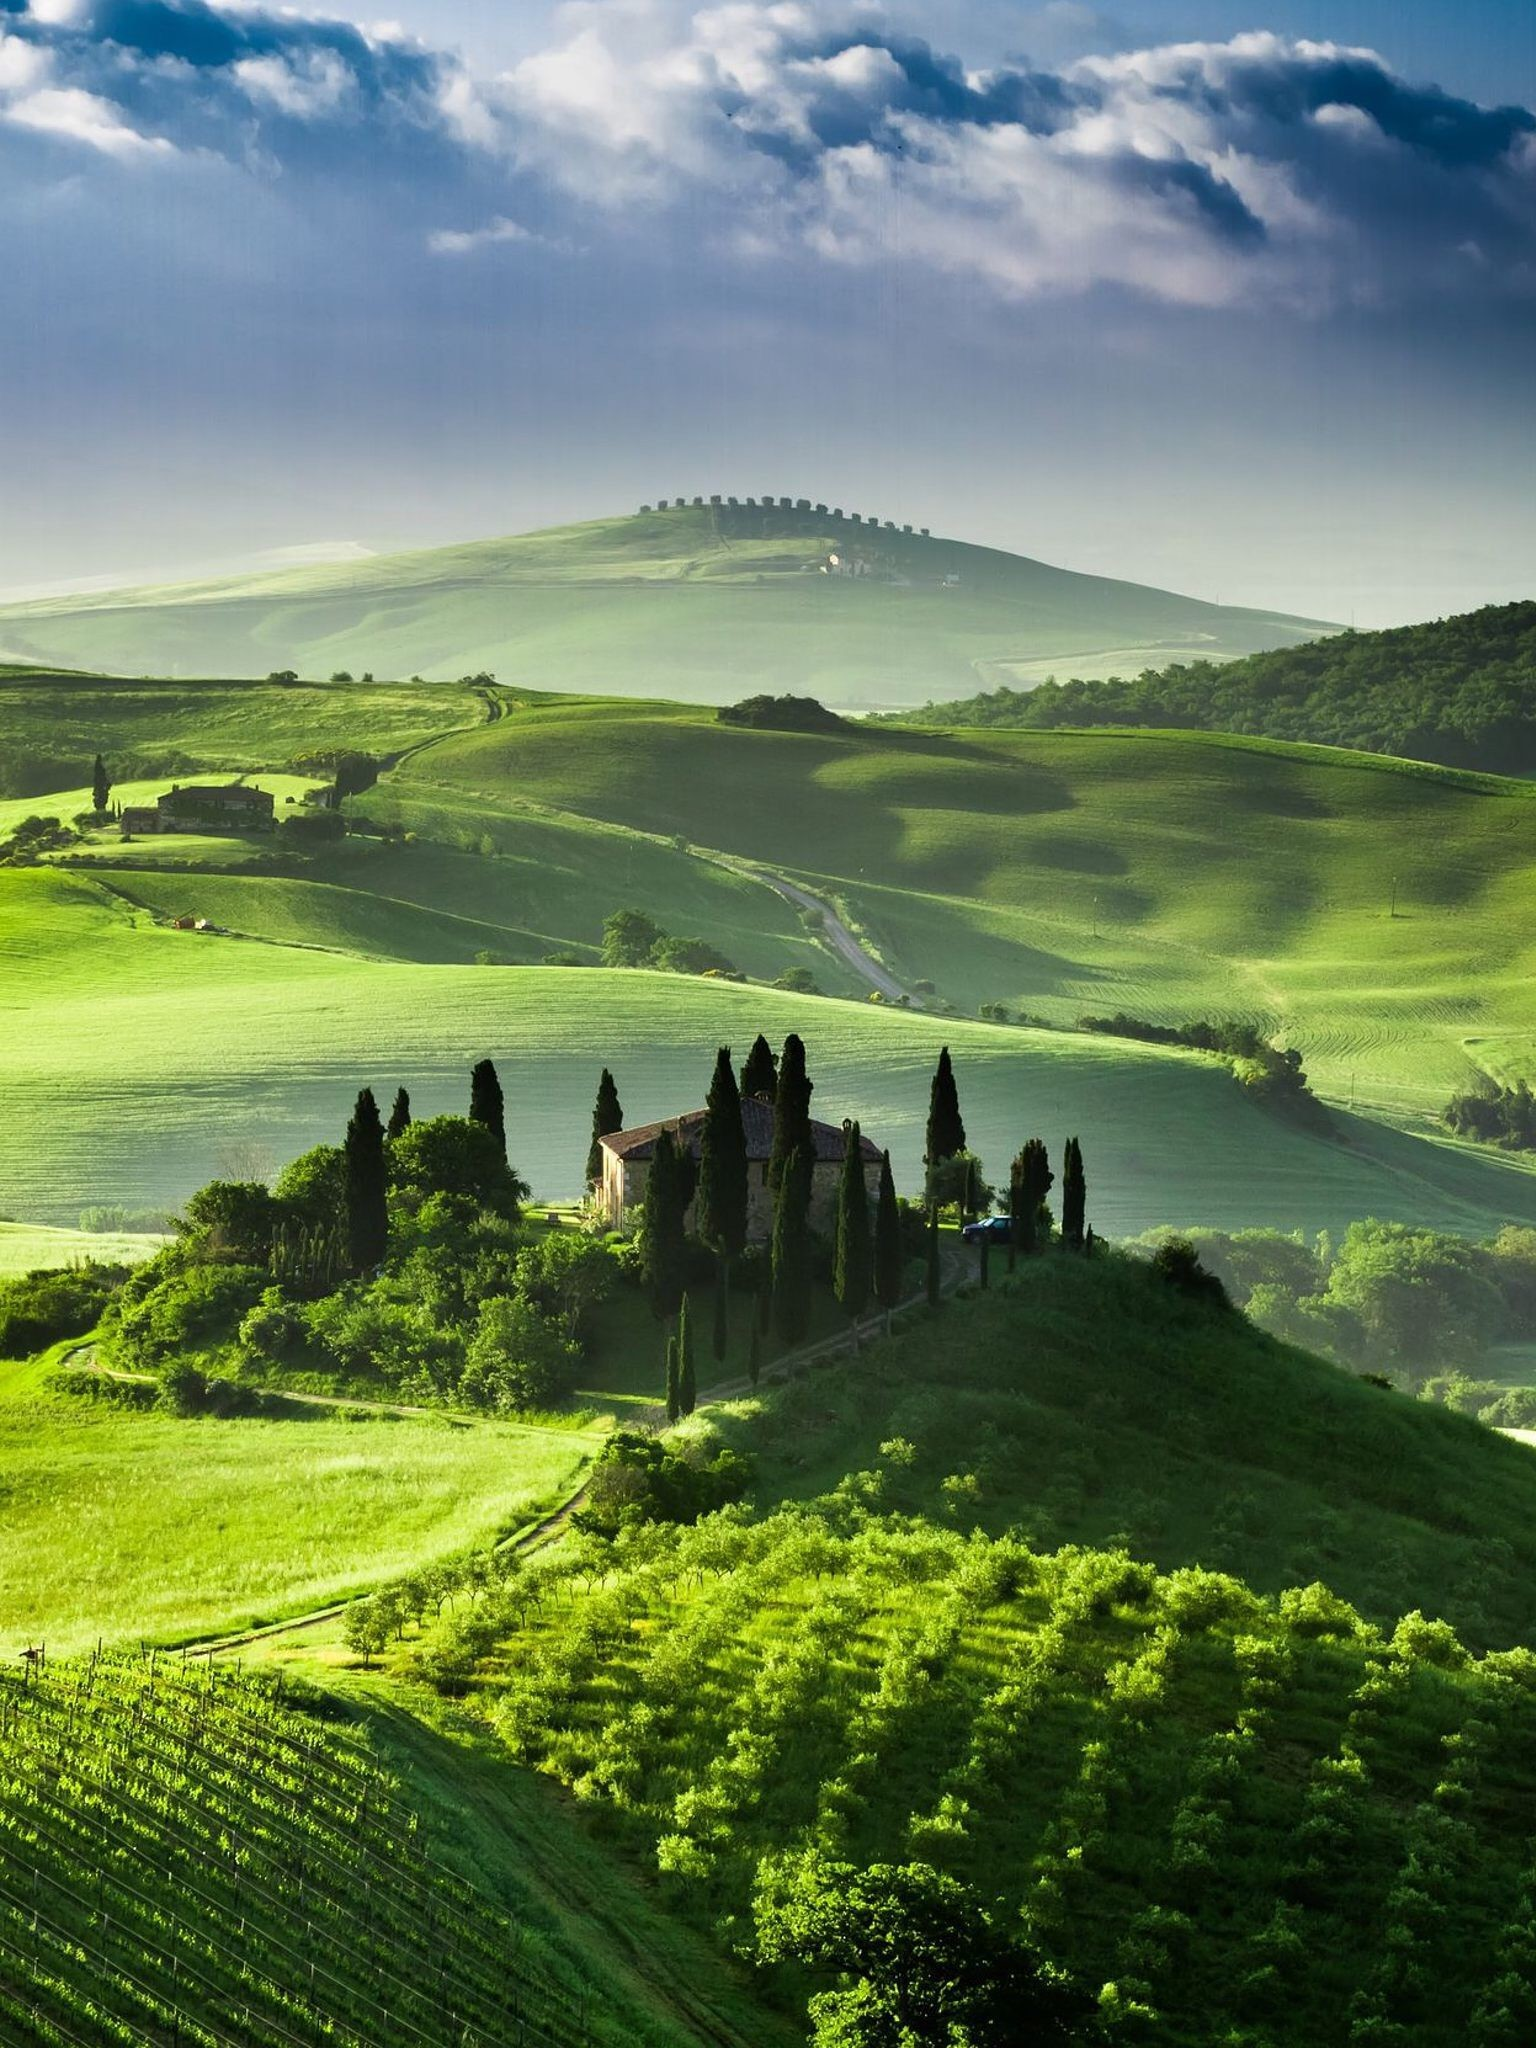 Res: 1536x2048, San Quirico d'Orcia, Tuscany, Italy Wallpaper for iPhone 5